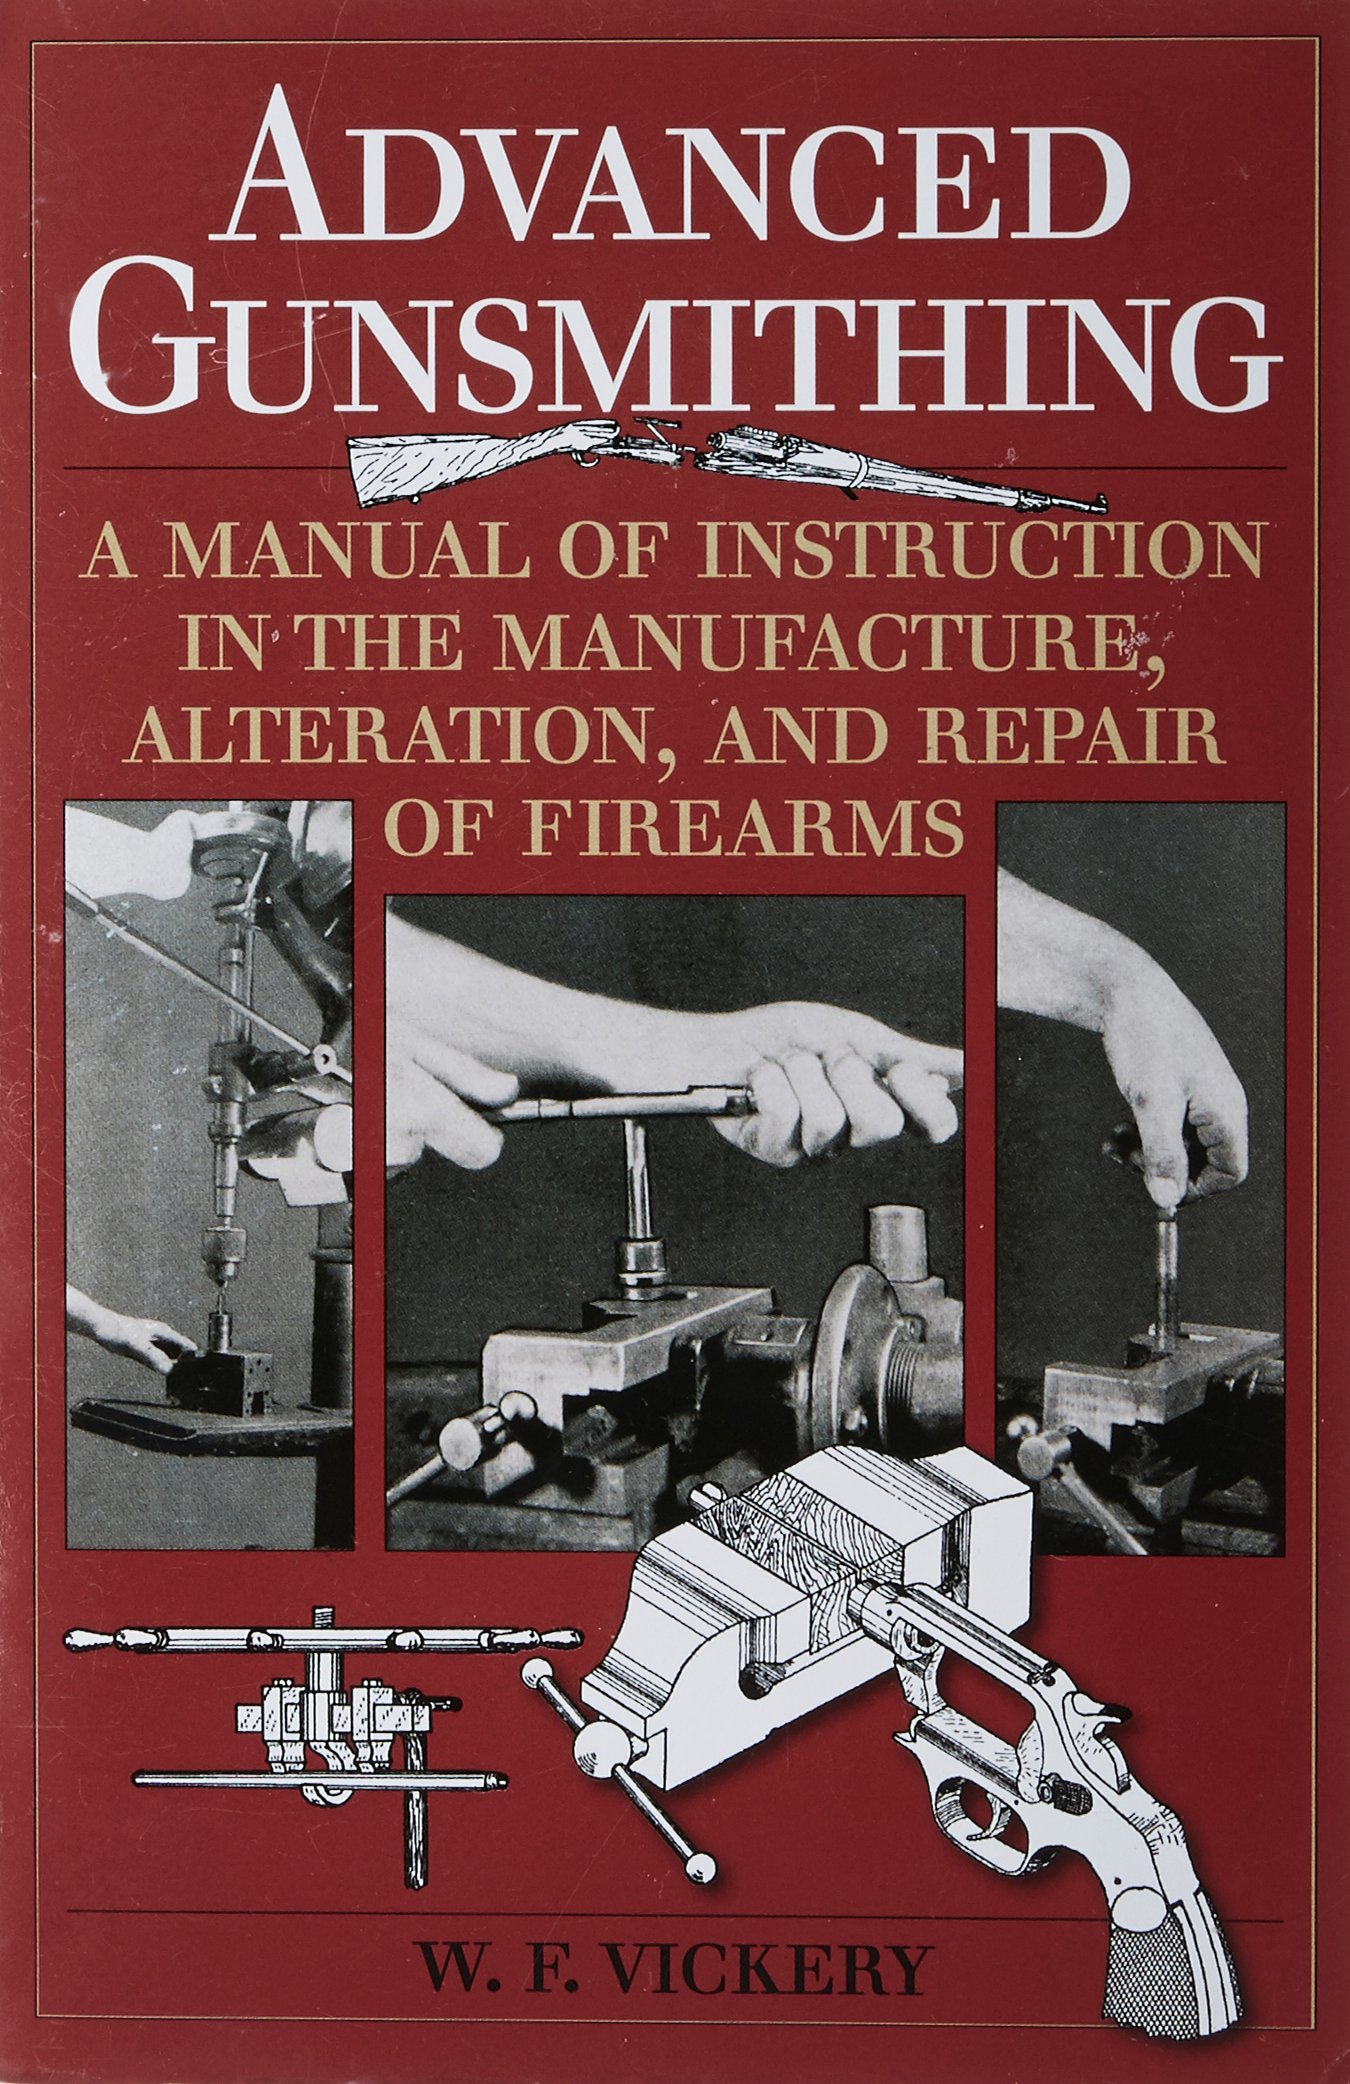 Amazon.com: Advanced Gunsmithing: A Manual of Instruction in the ...